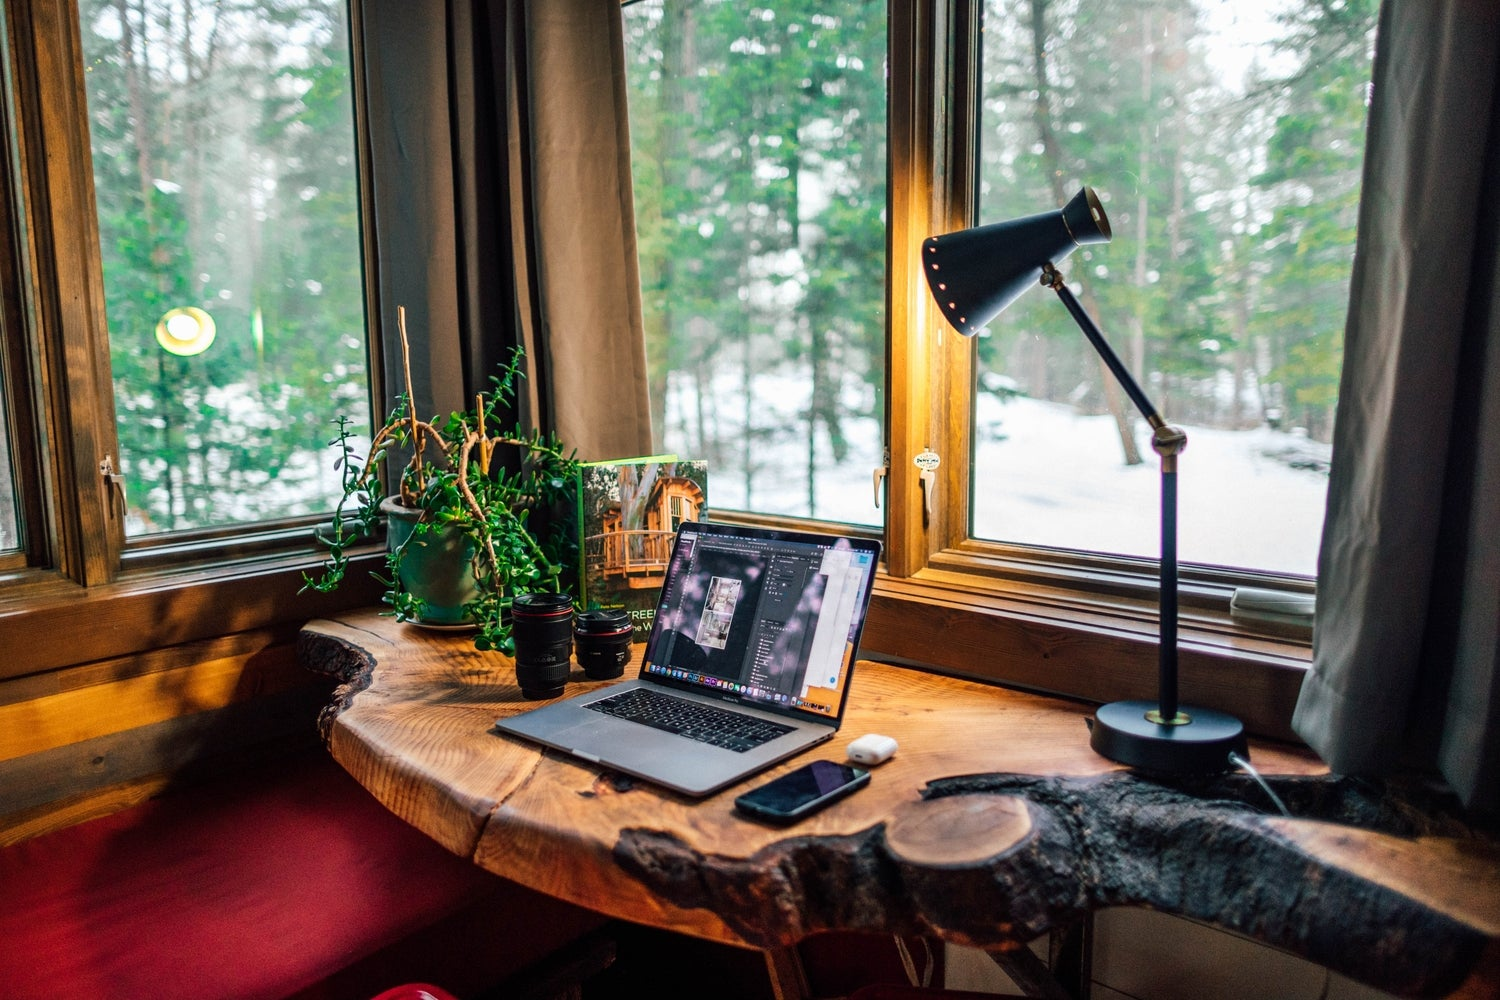 a home office with a solid wood desk and many windows looking out onto a snow-covered forest